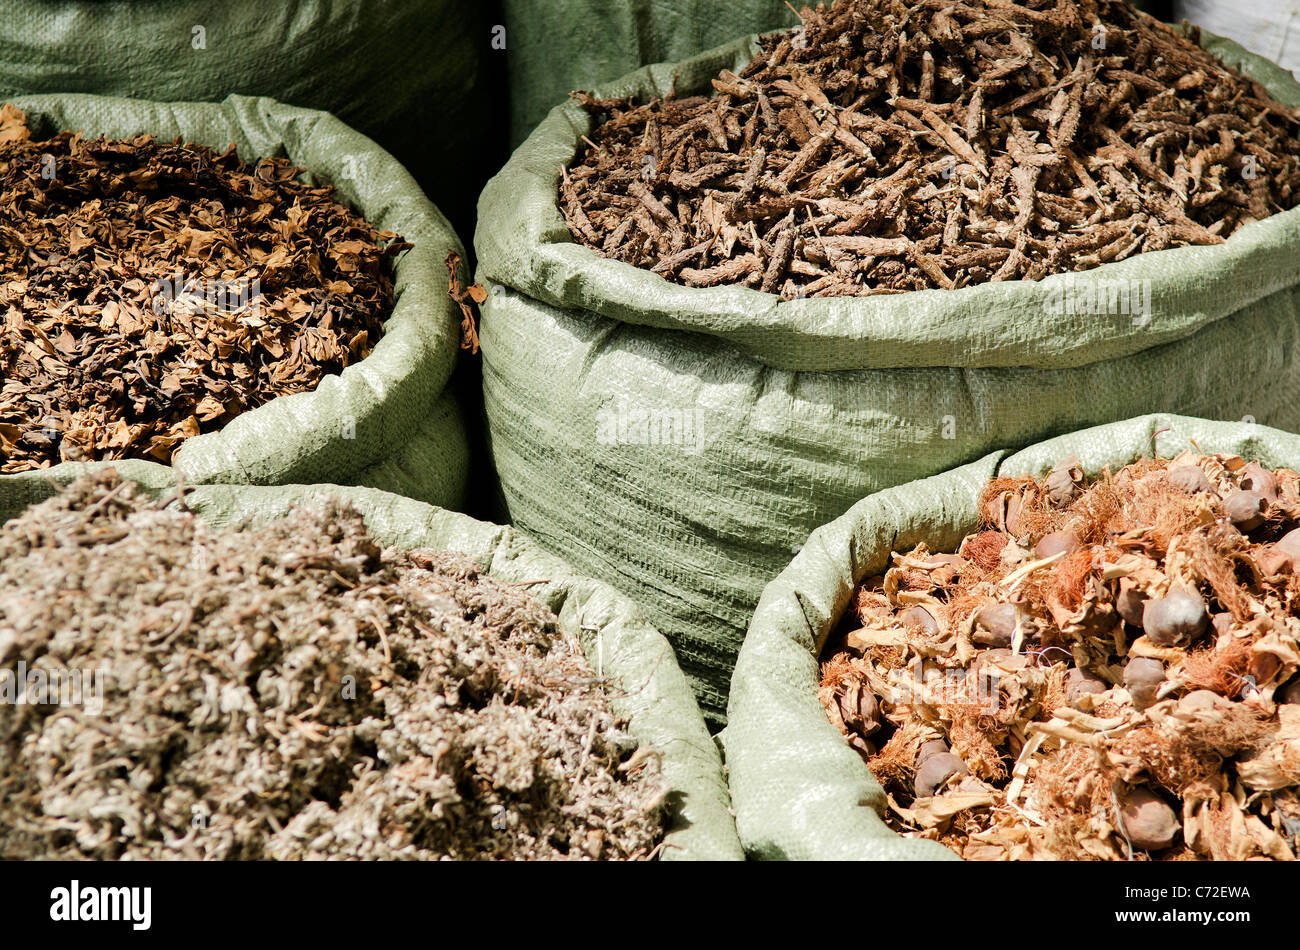 traditional herbs in vietnam market - Stock Image